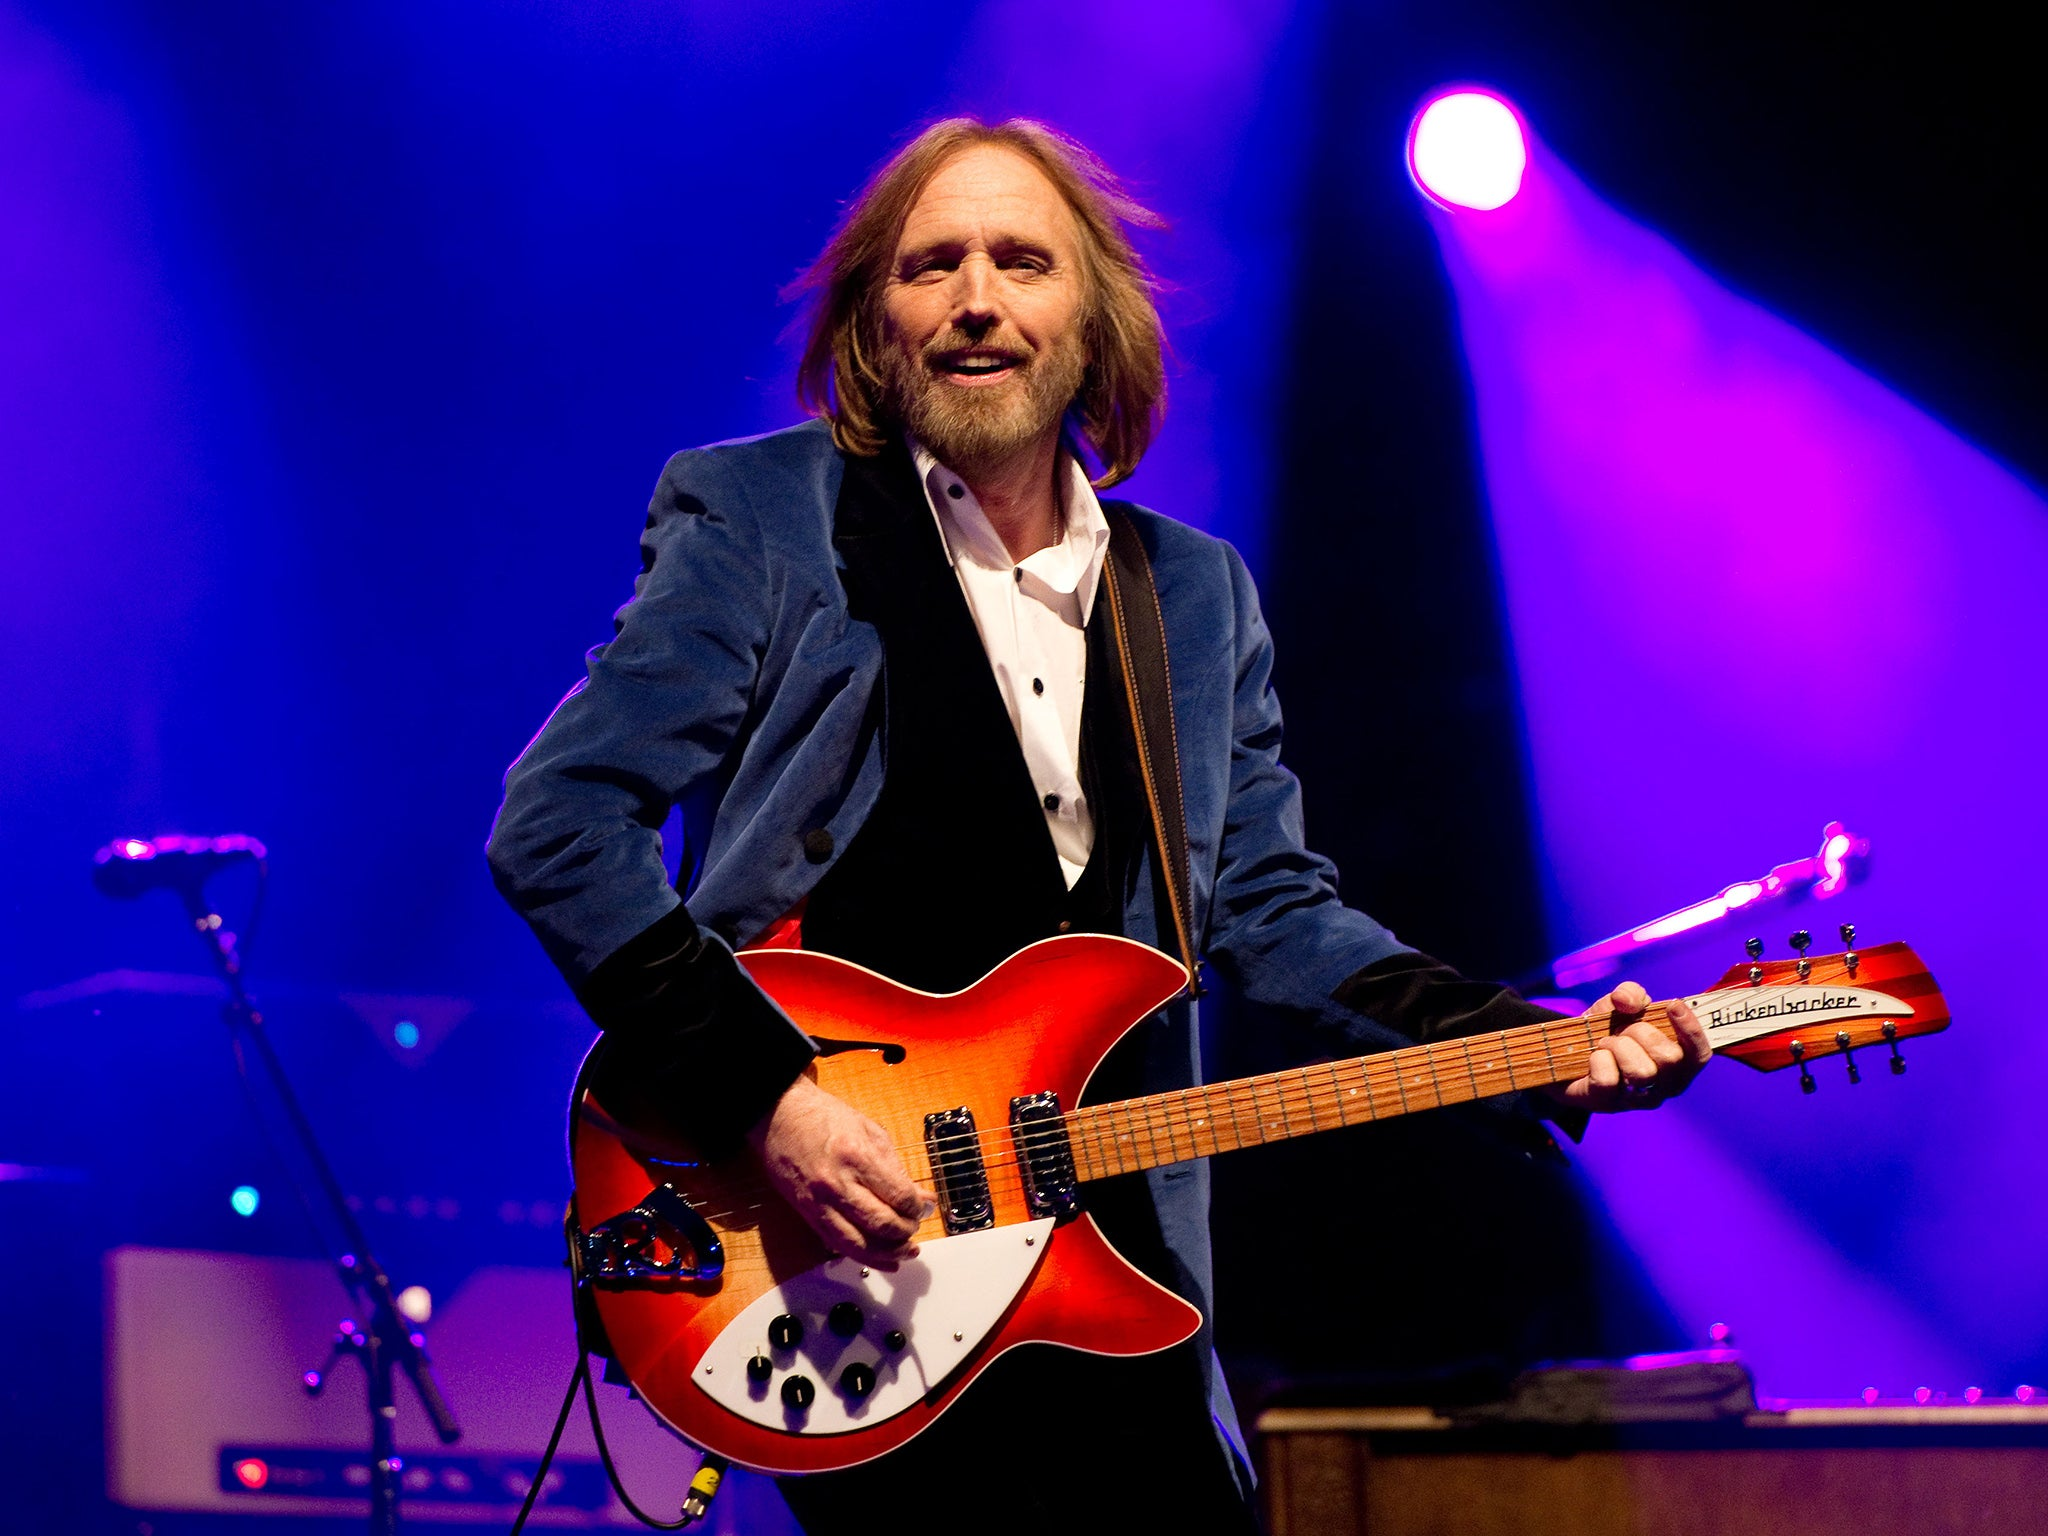 Tom Petty Dead The Rockers 8 Best Songs From American Girl To Free